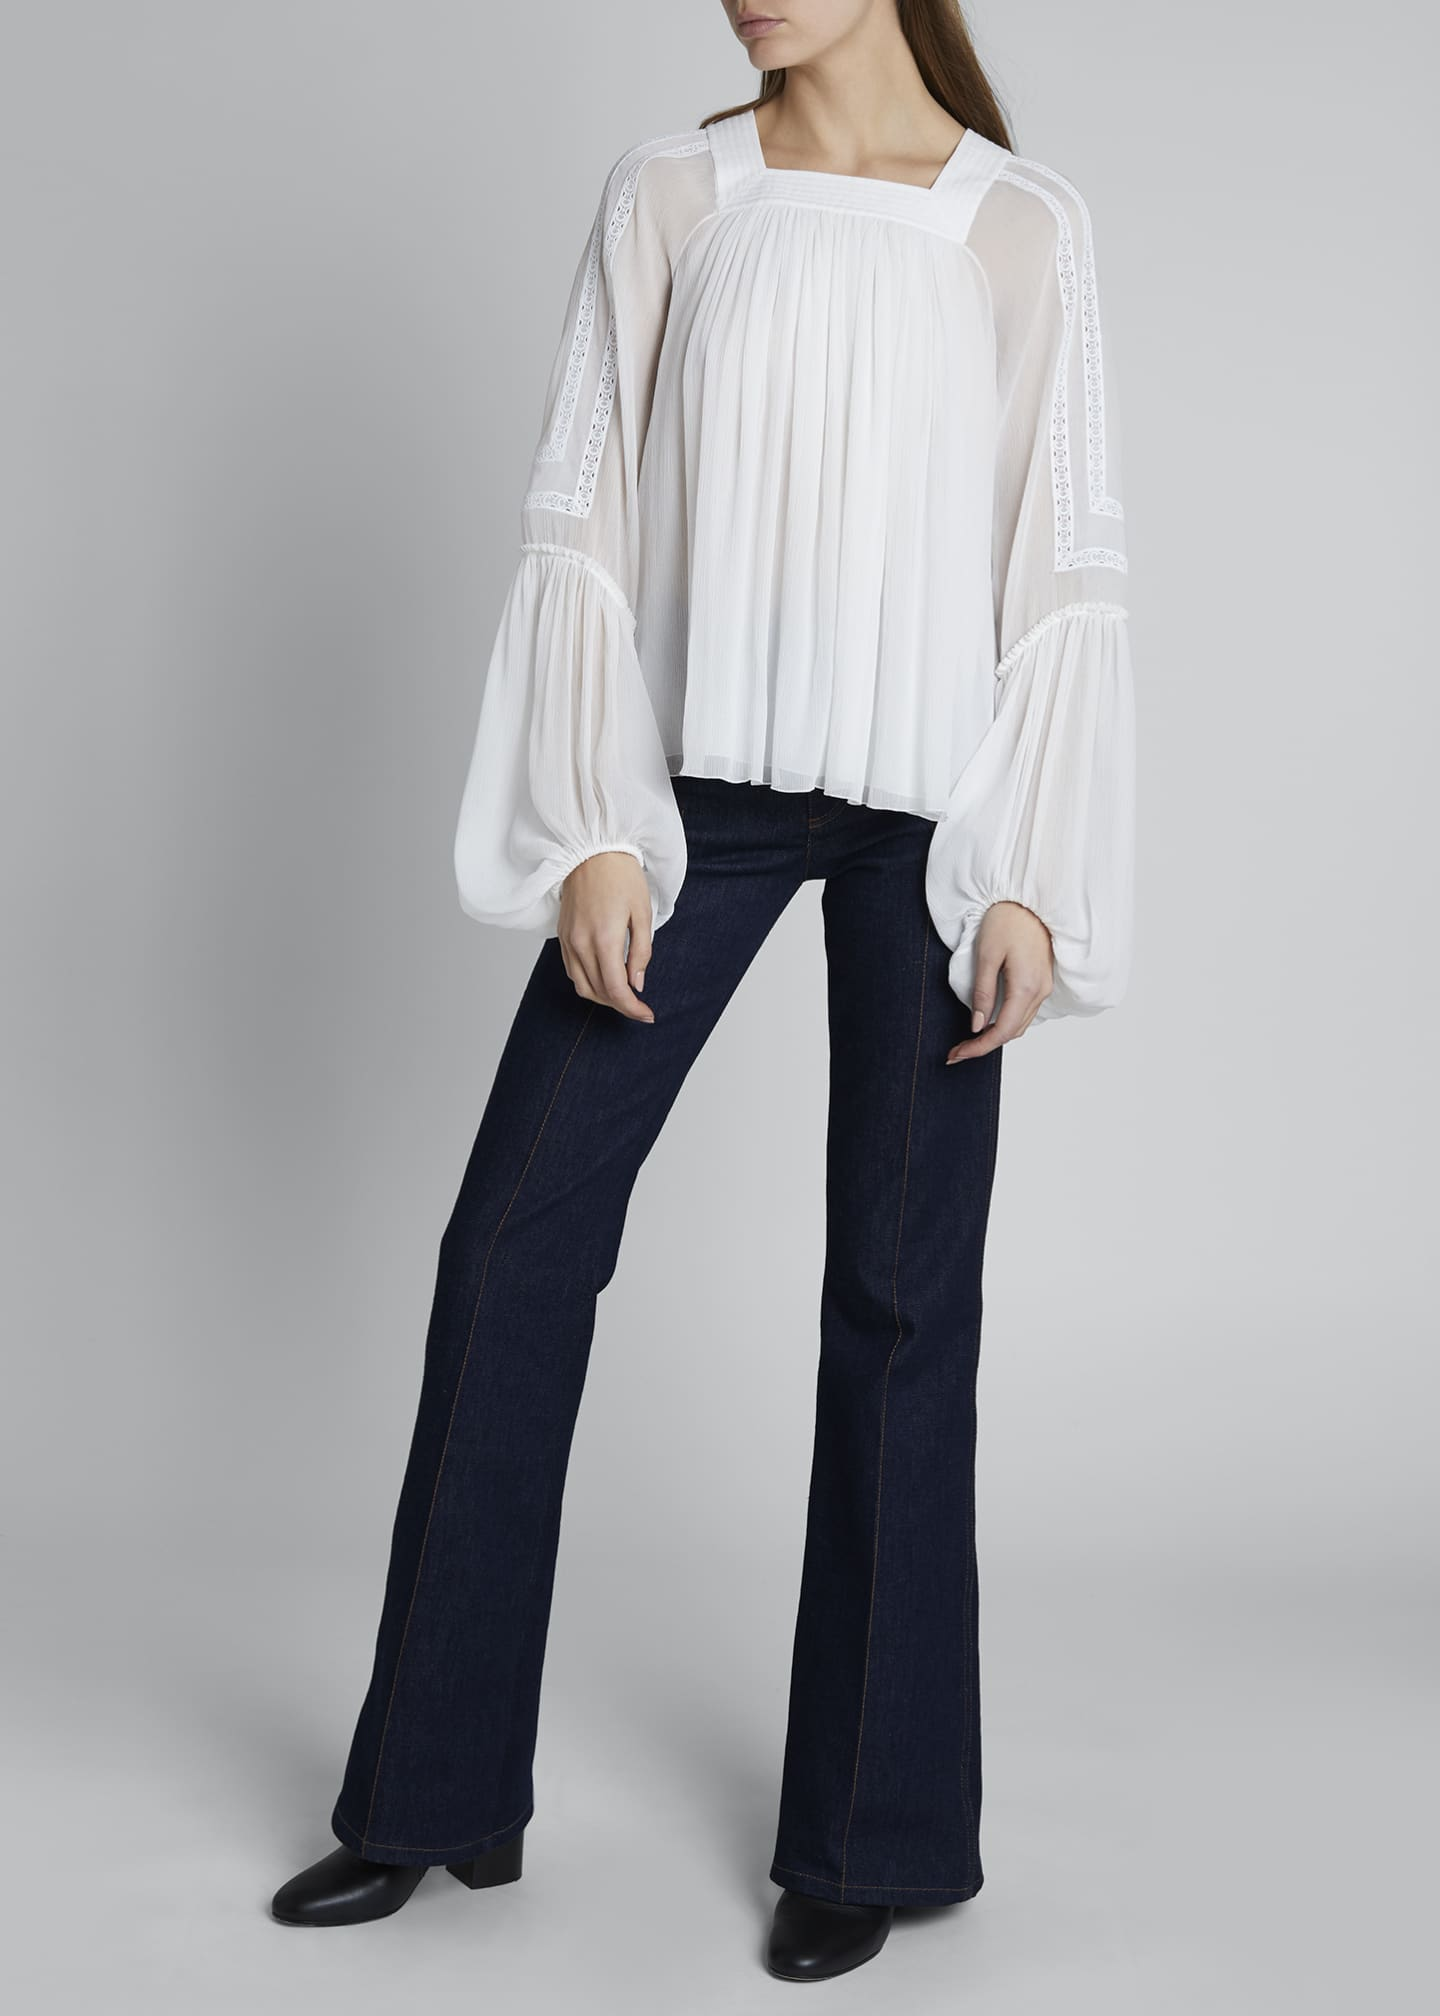 Embroidered Shoulder Square-Neck Balloon-Sleeve Top